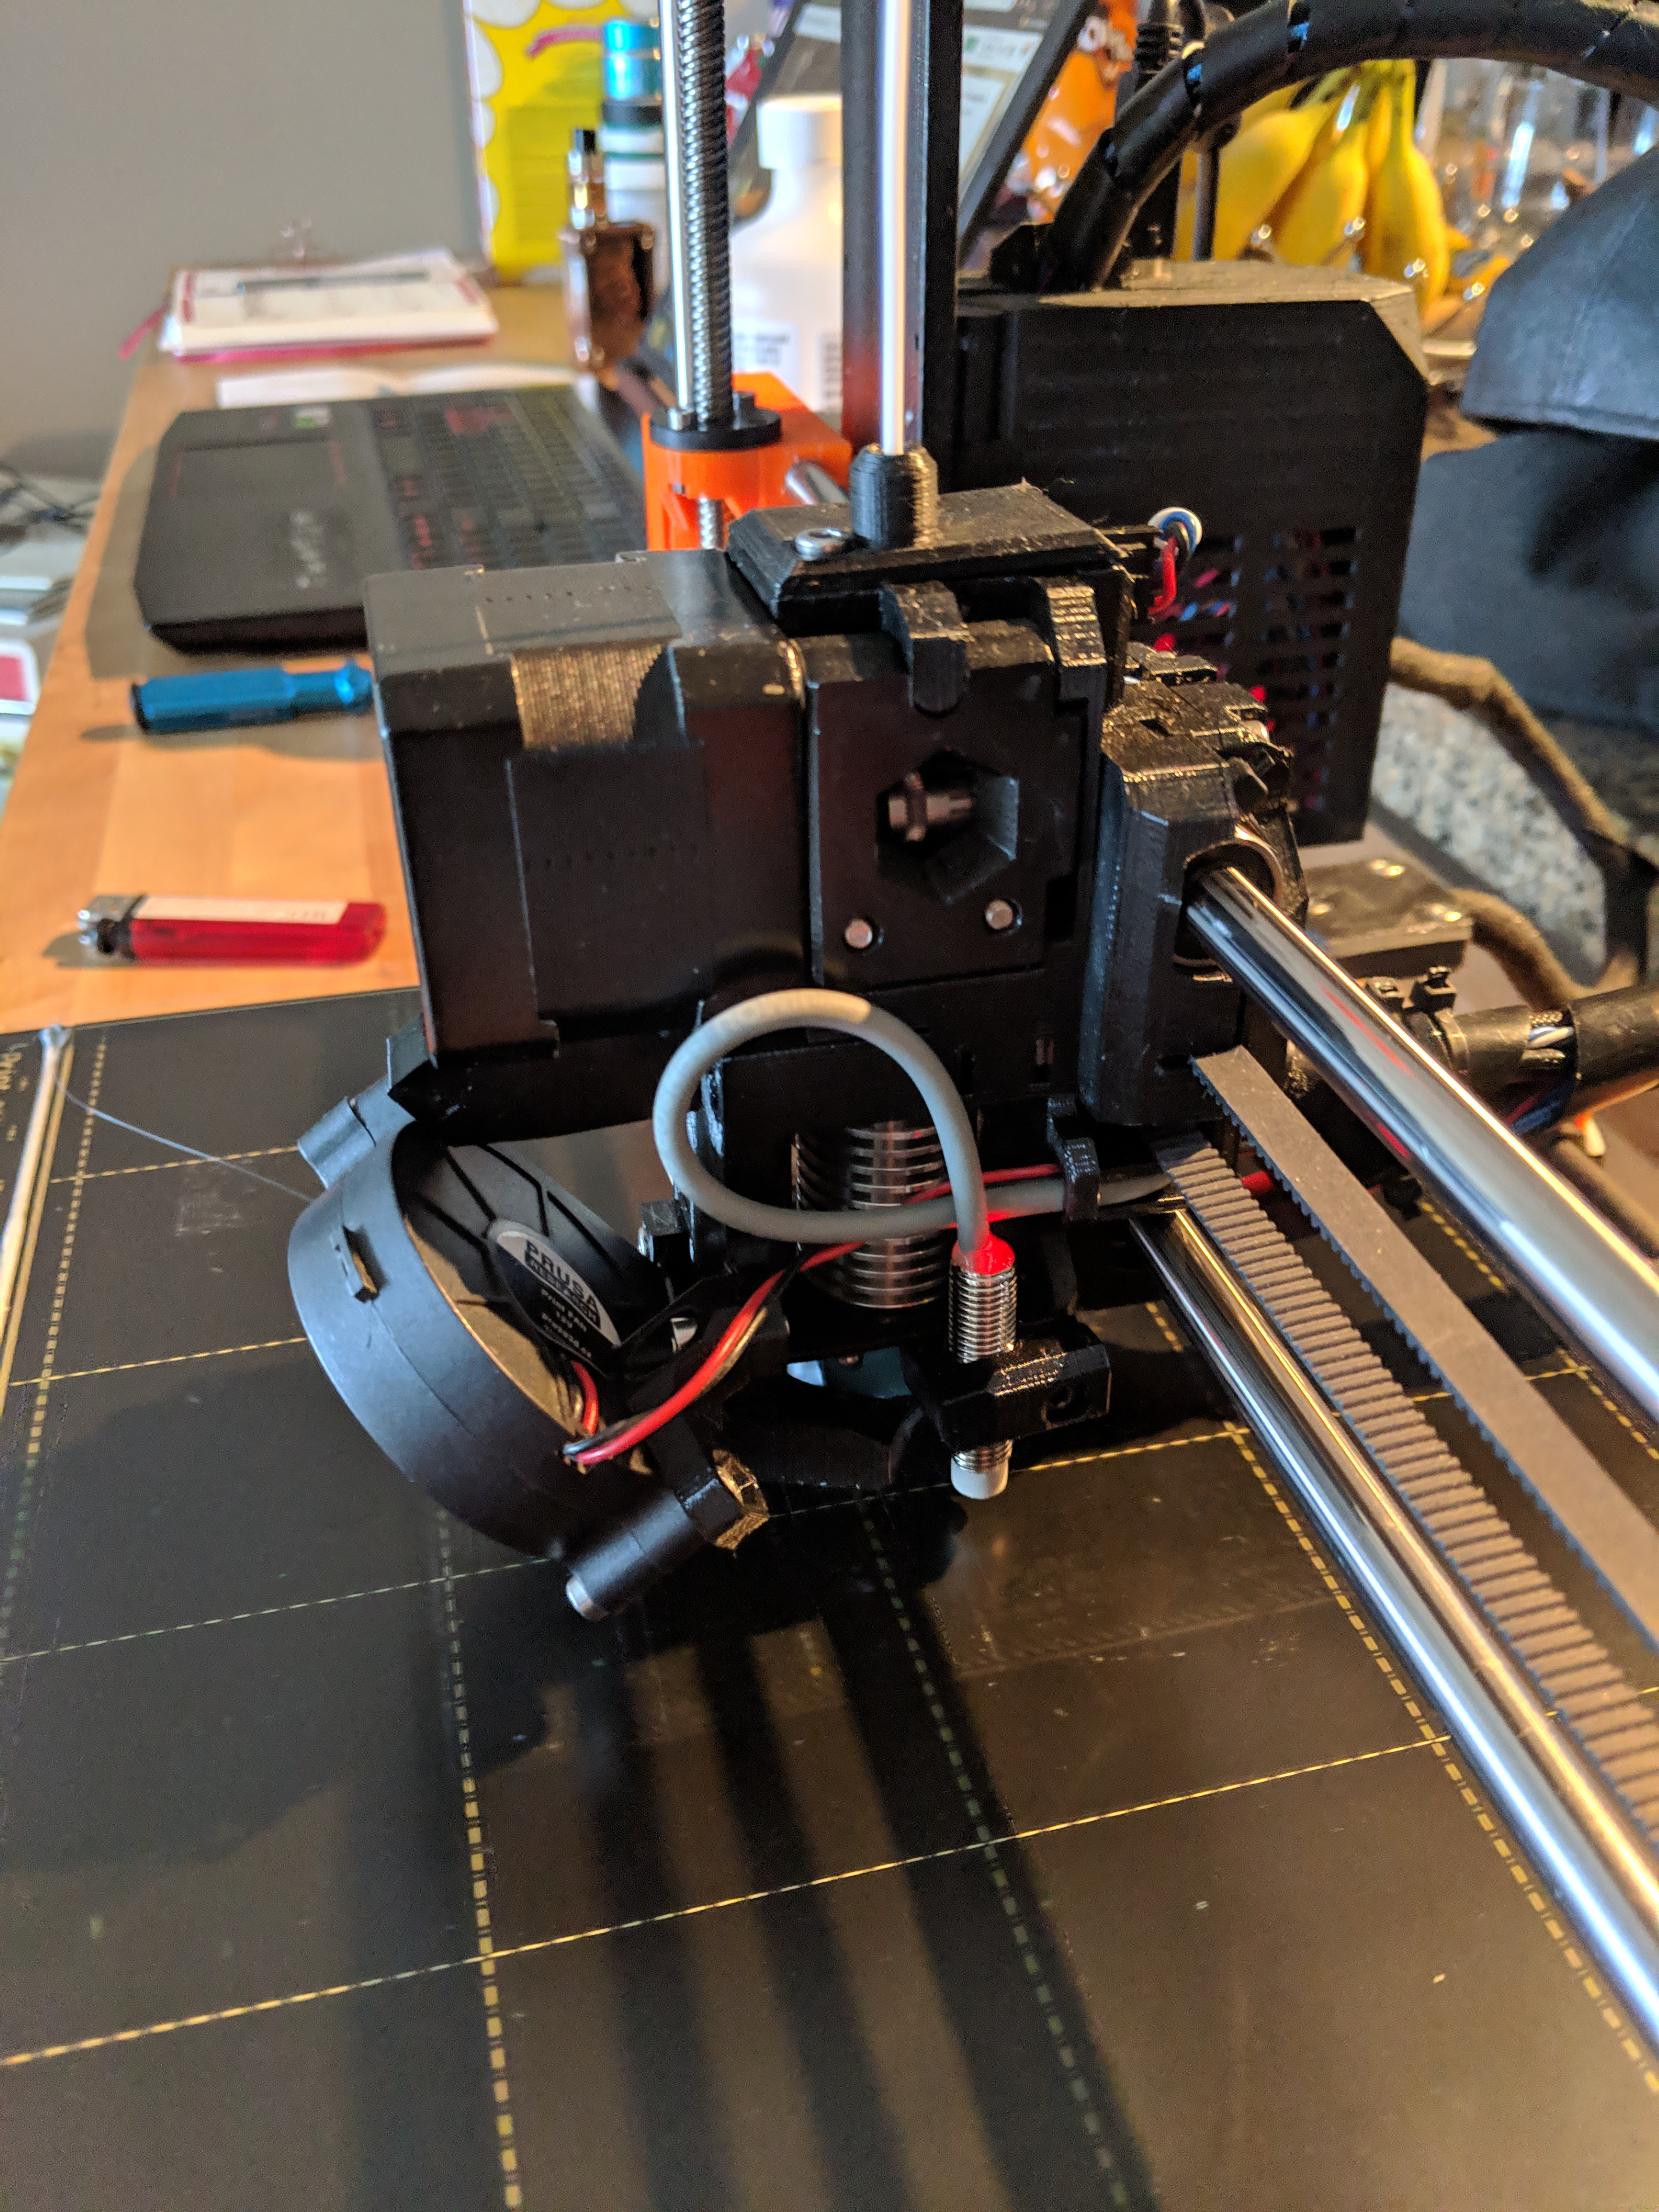 3D Printable Prusa i3 Mk2 5-Mk3 Extruder, Body and Cover R3 rework